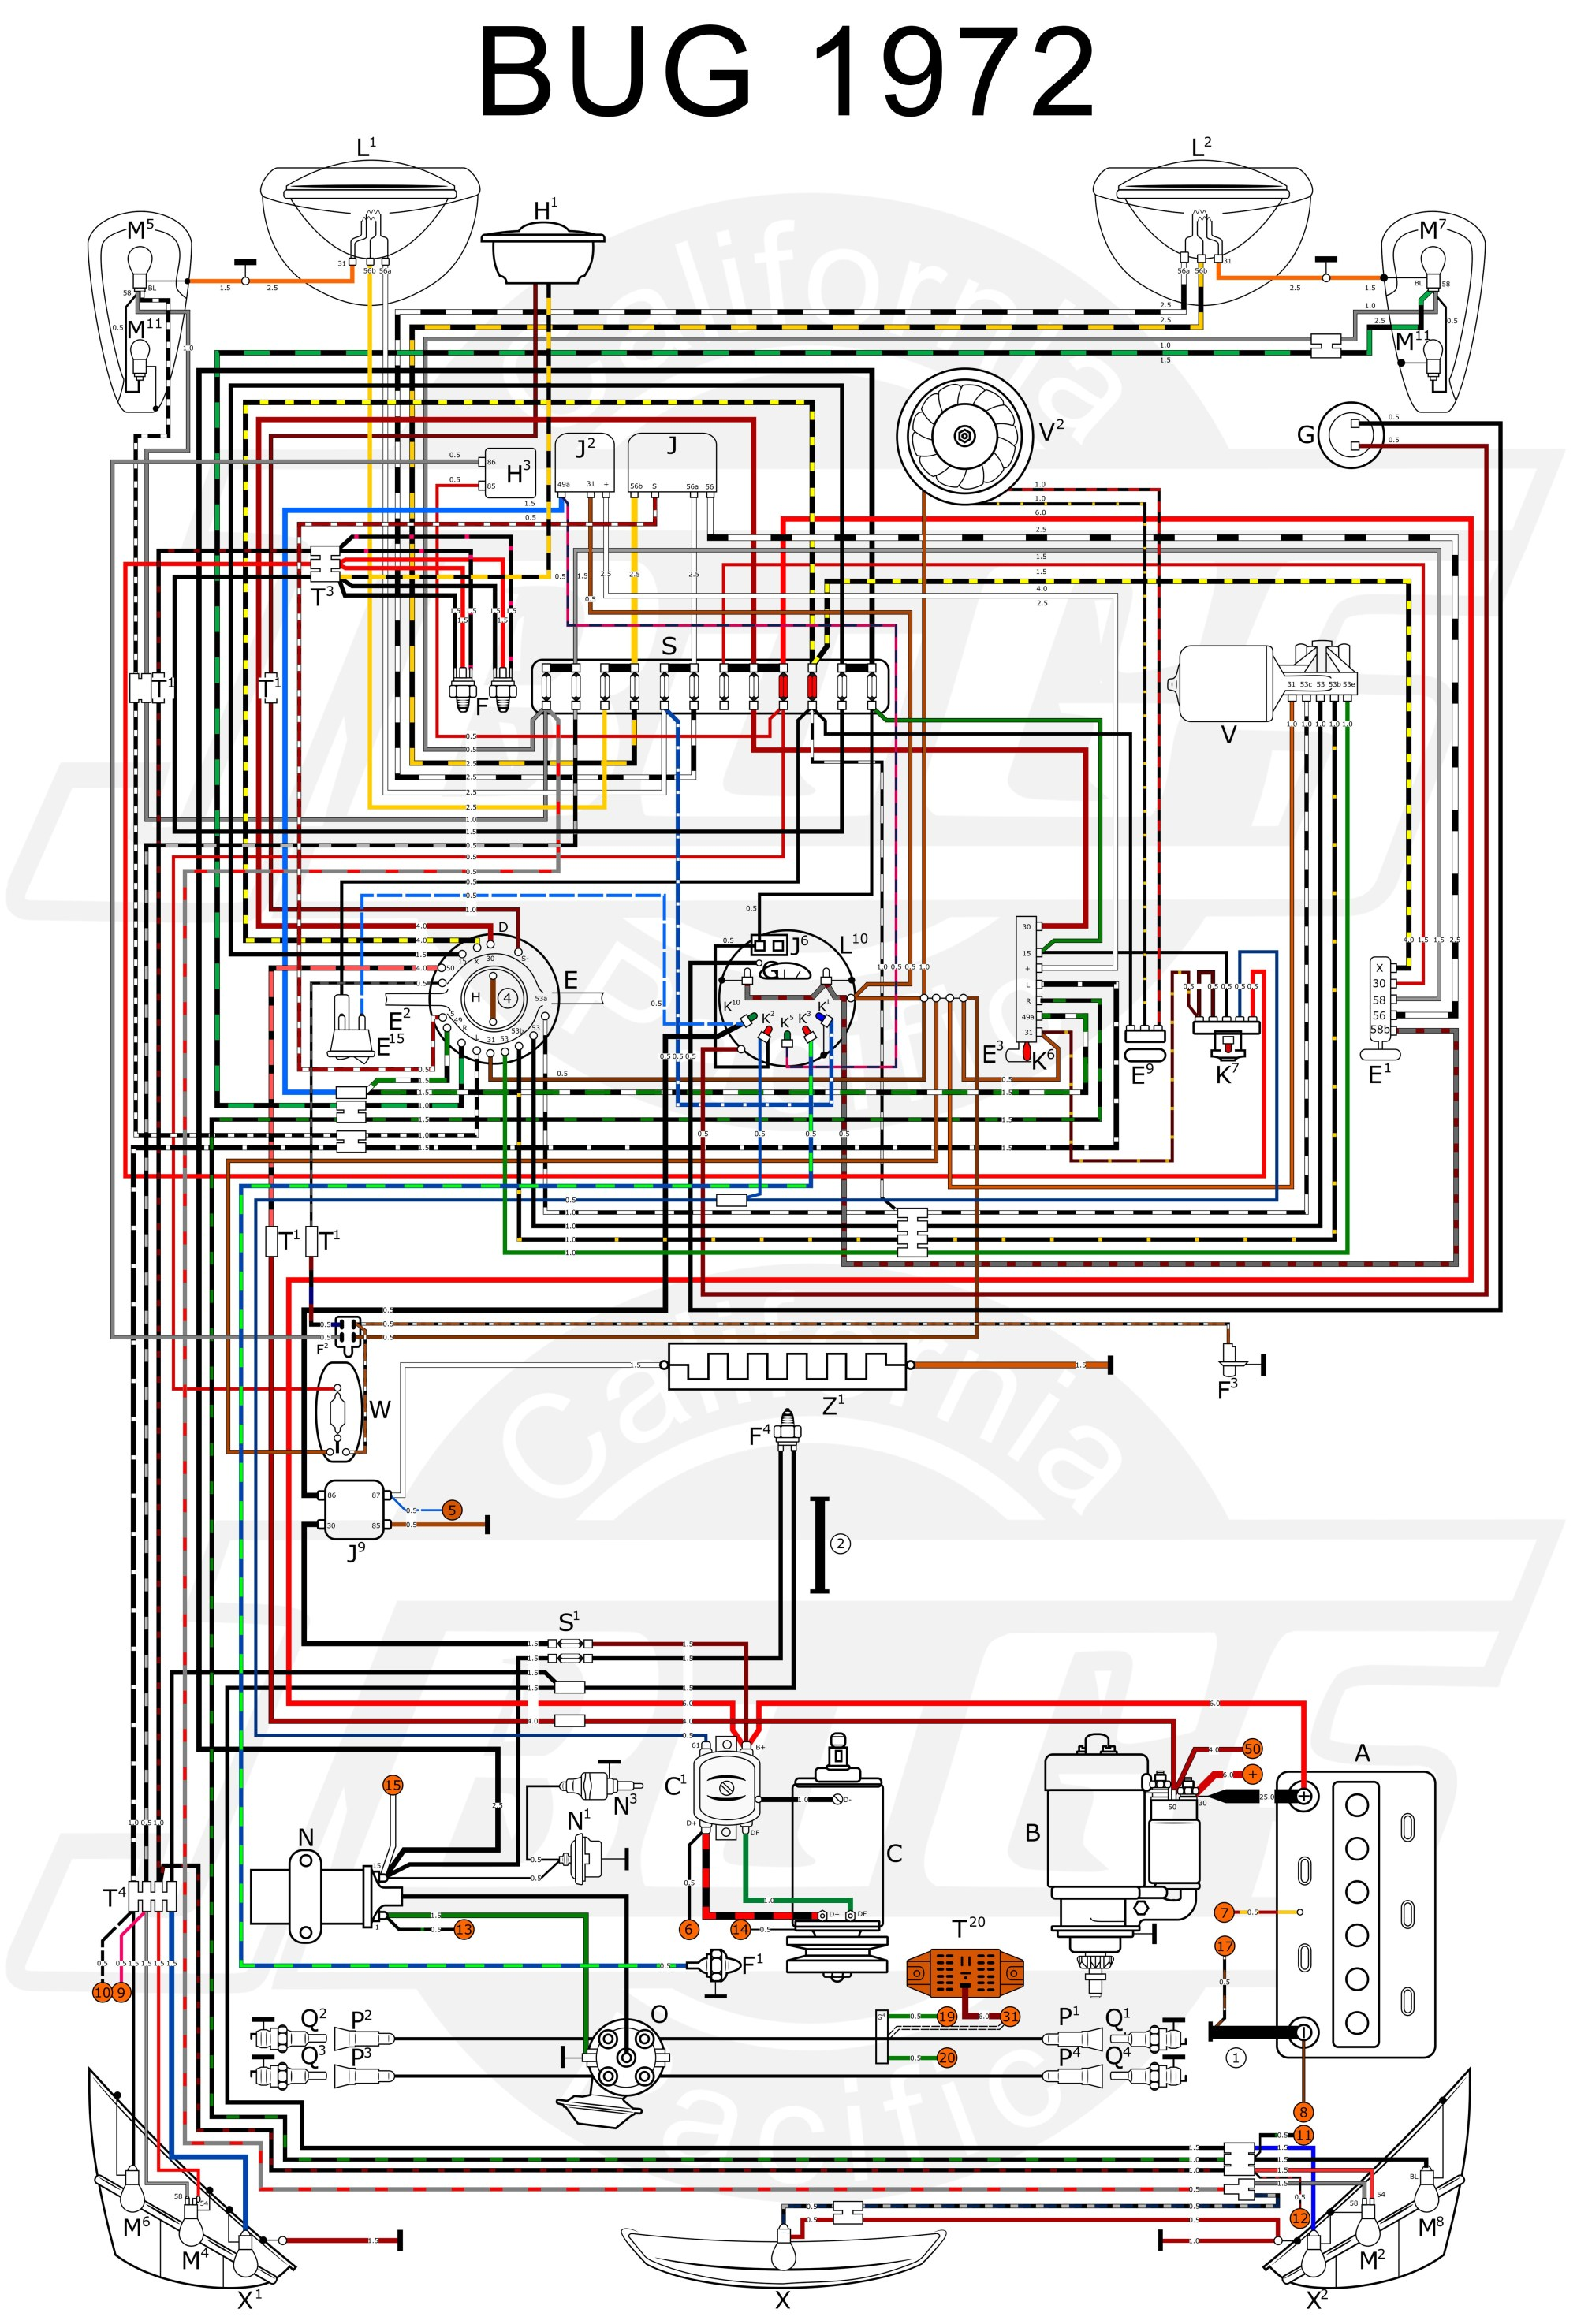 hight resolution of 74 beetle wiring diagram wiring diagram 74 beetle backup lights wiring harness